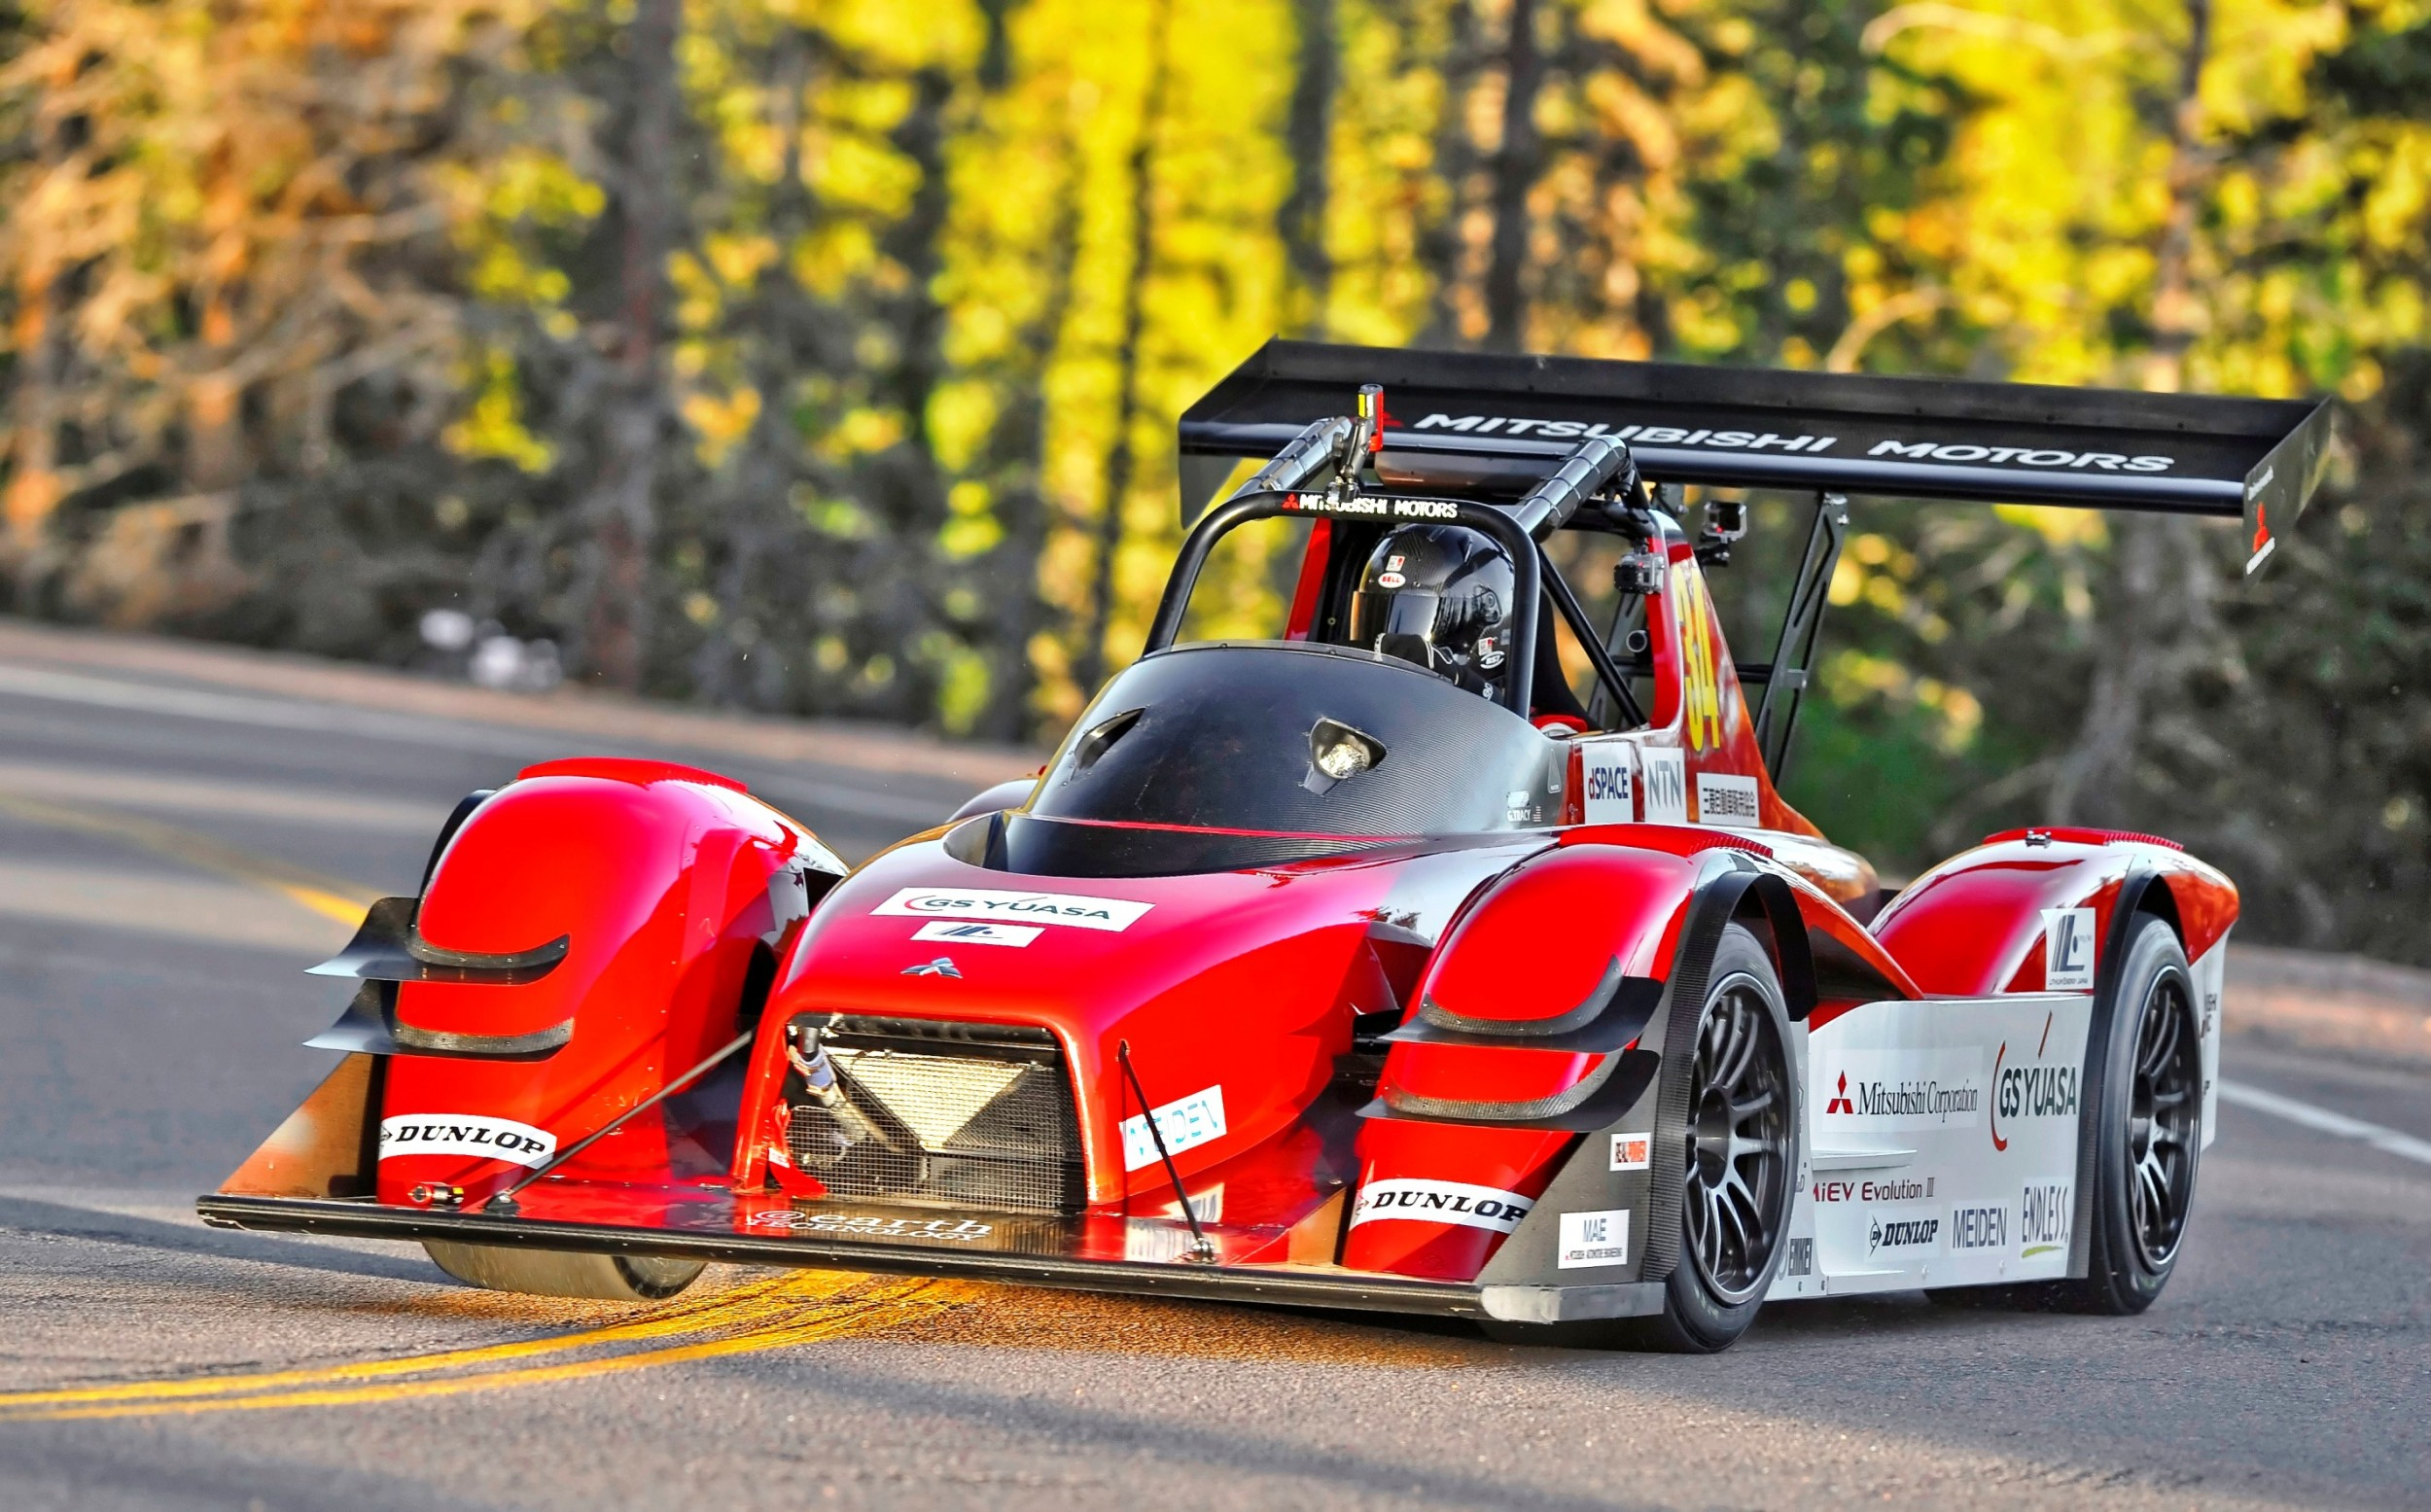 600hp Miev Evolution Iii Mitsubishi Zaps Pikes Peak Clouds With 9 Min 8 Sec One Two Finish